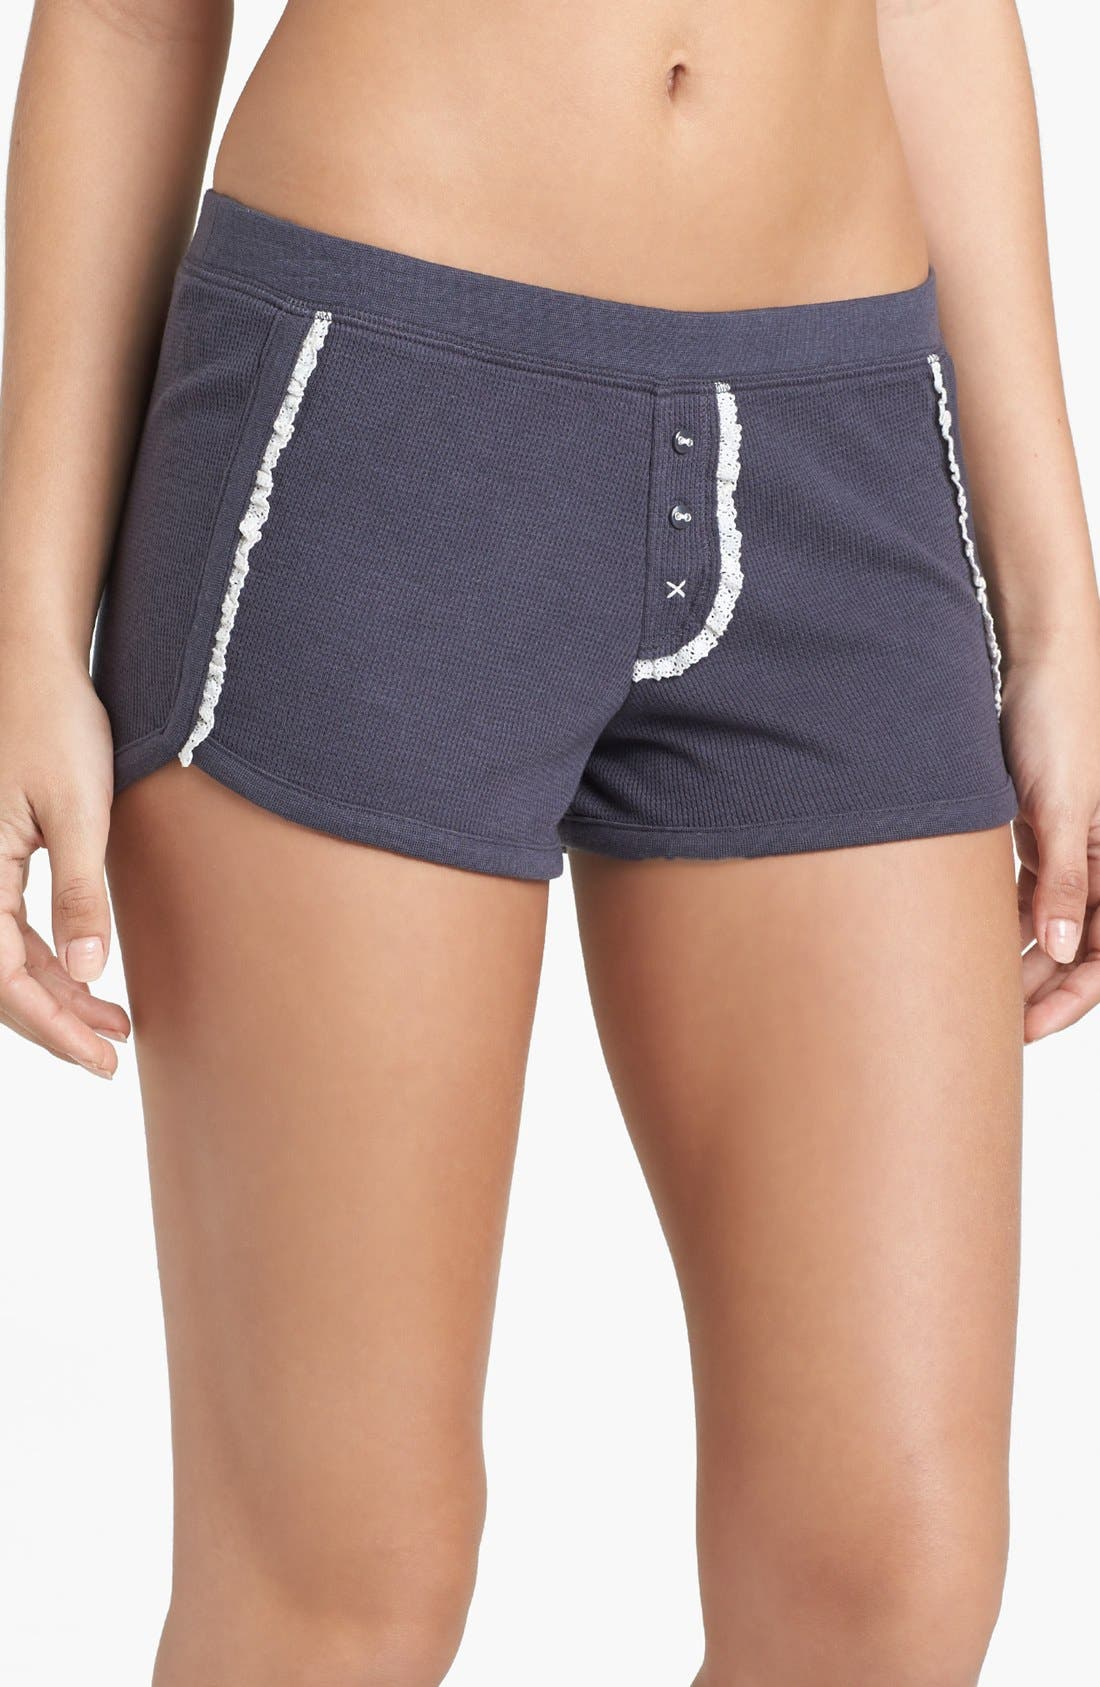 Alternate Image 1 Selected - BP. Undercover 'Campside' Thermal Shorts (Juniors)